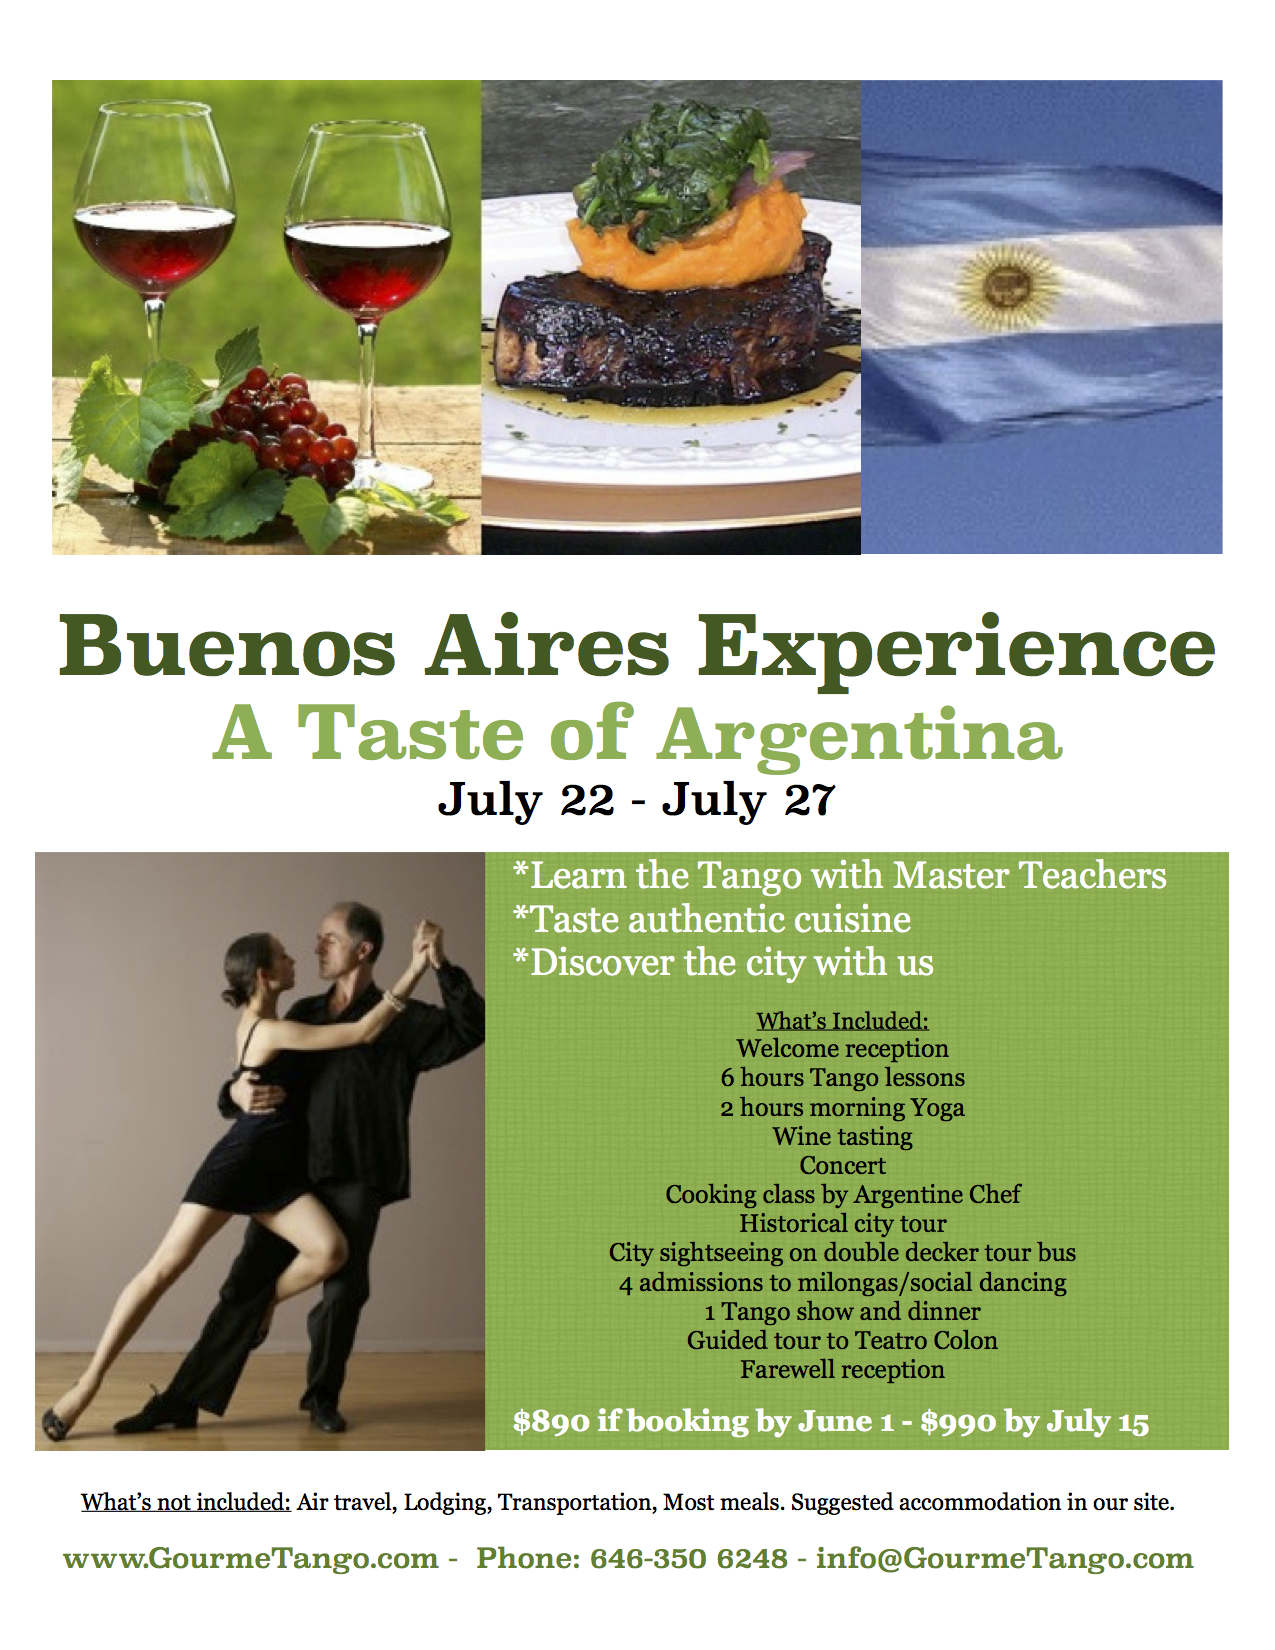 Buenos Aires Experience Trip July 22-27, 2014